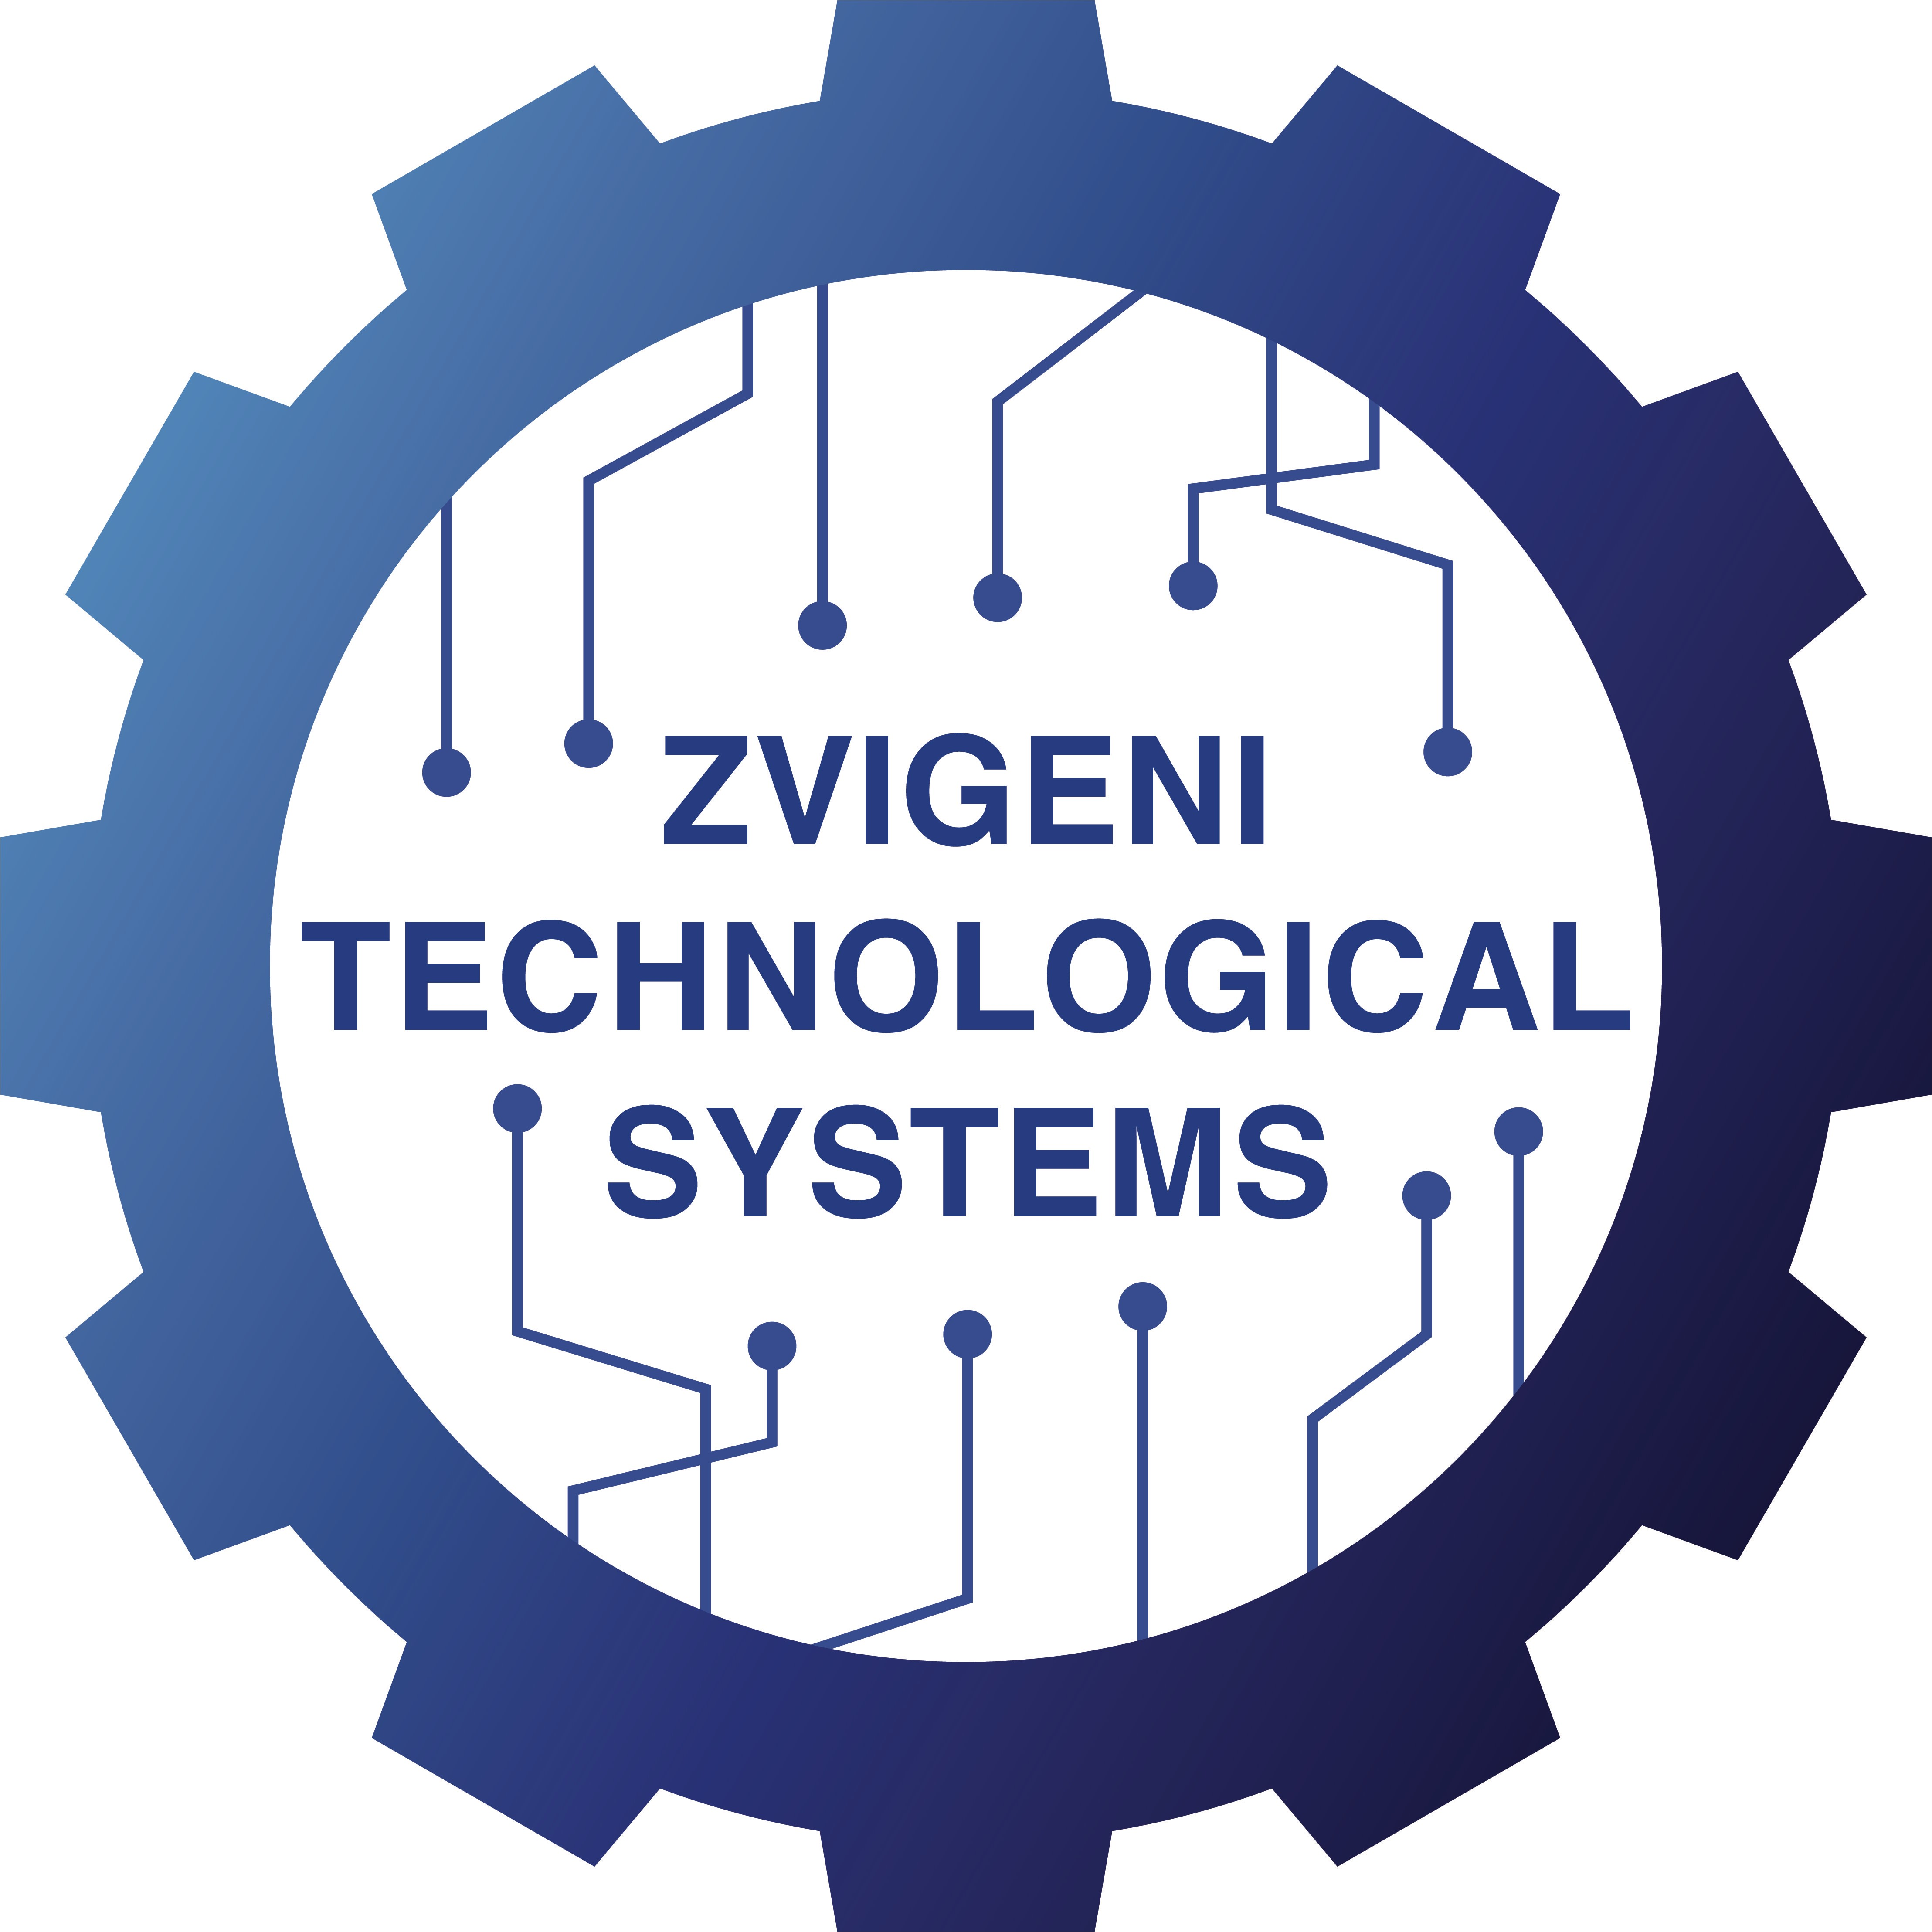 Zvigeni Technology Systems